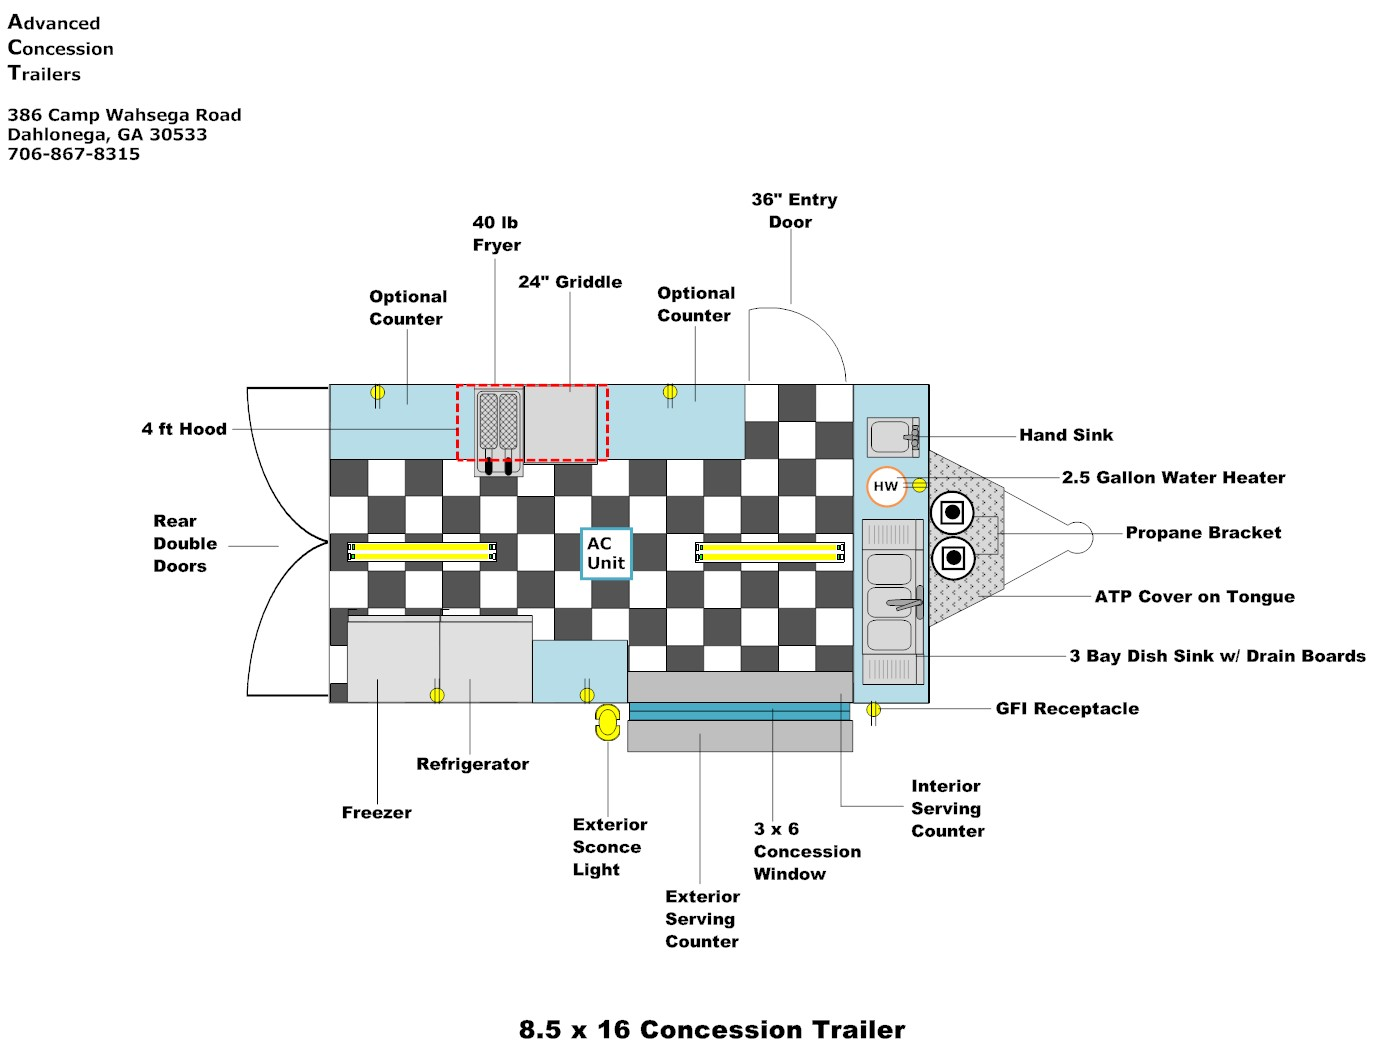 FLOOR LAYOUTS Advanced Concession Trailers